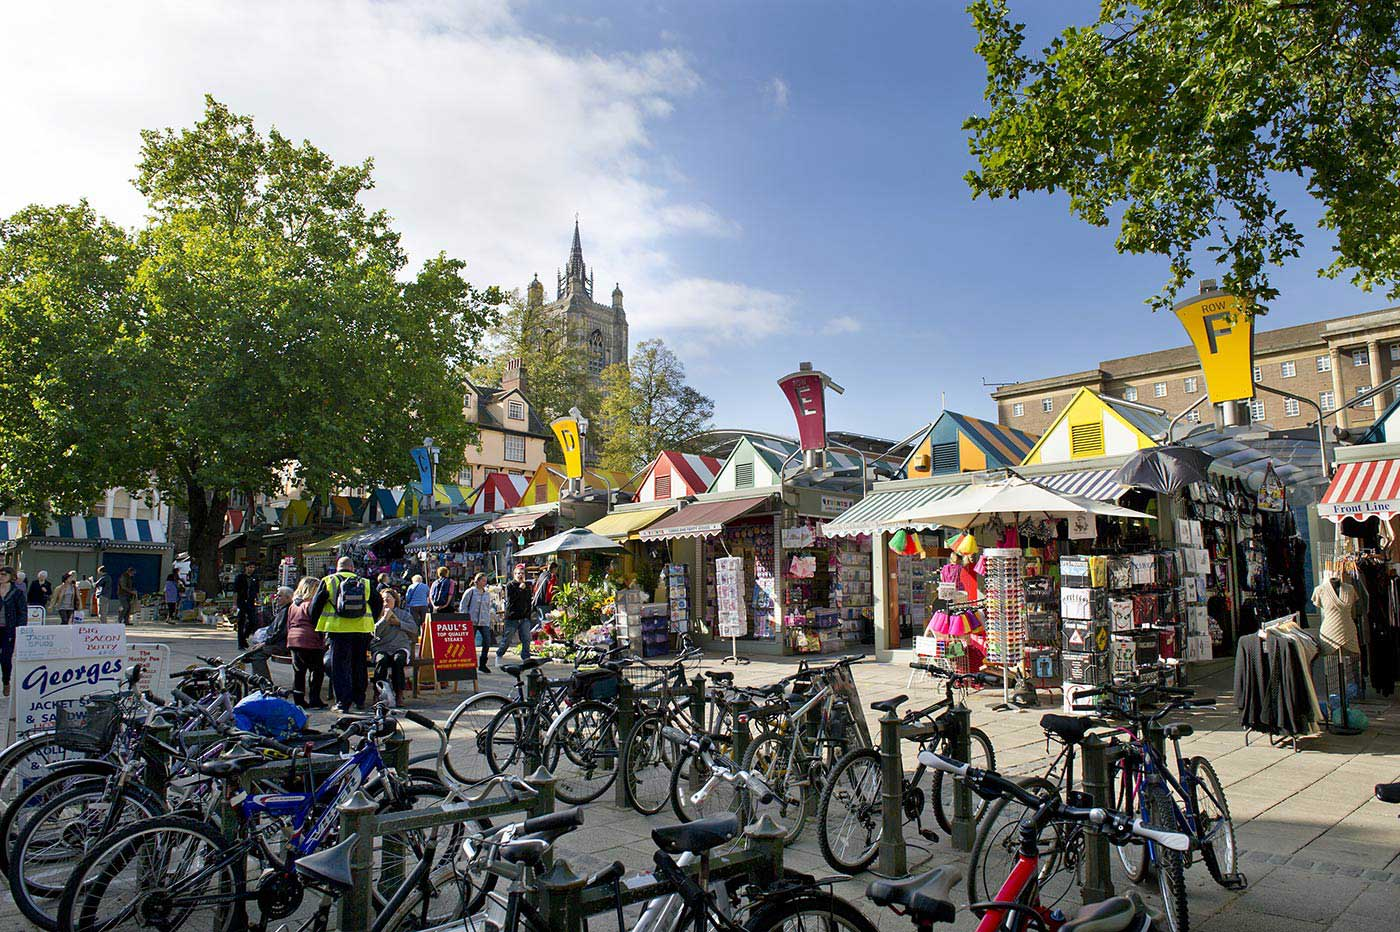 Explore the largest open-air market in England